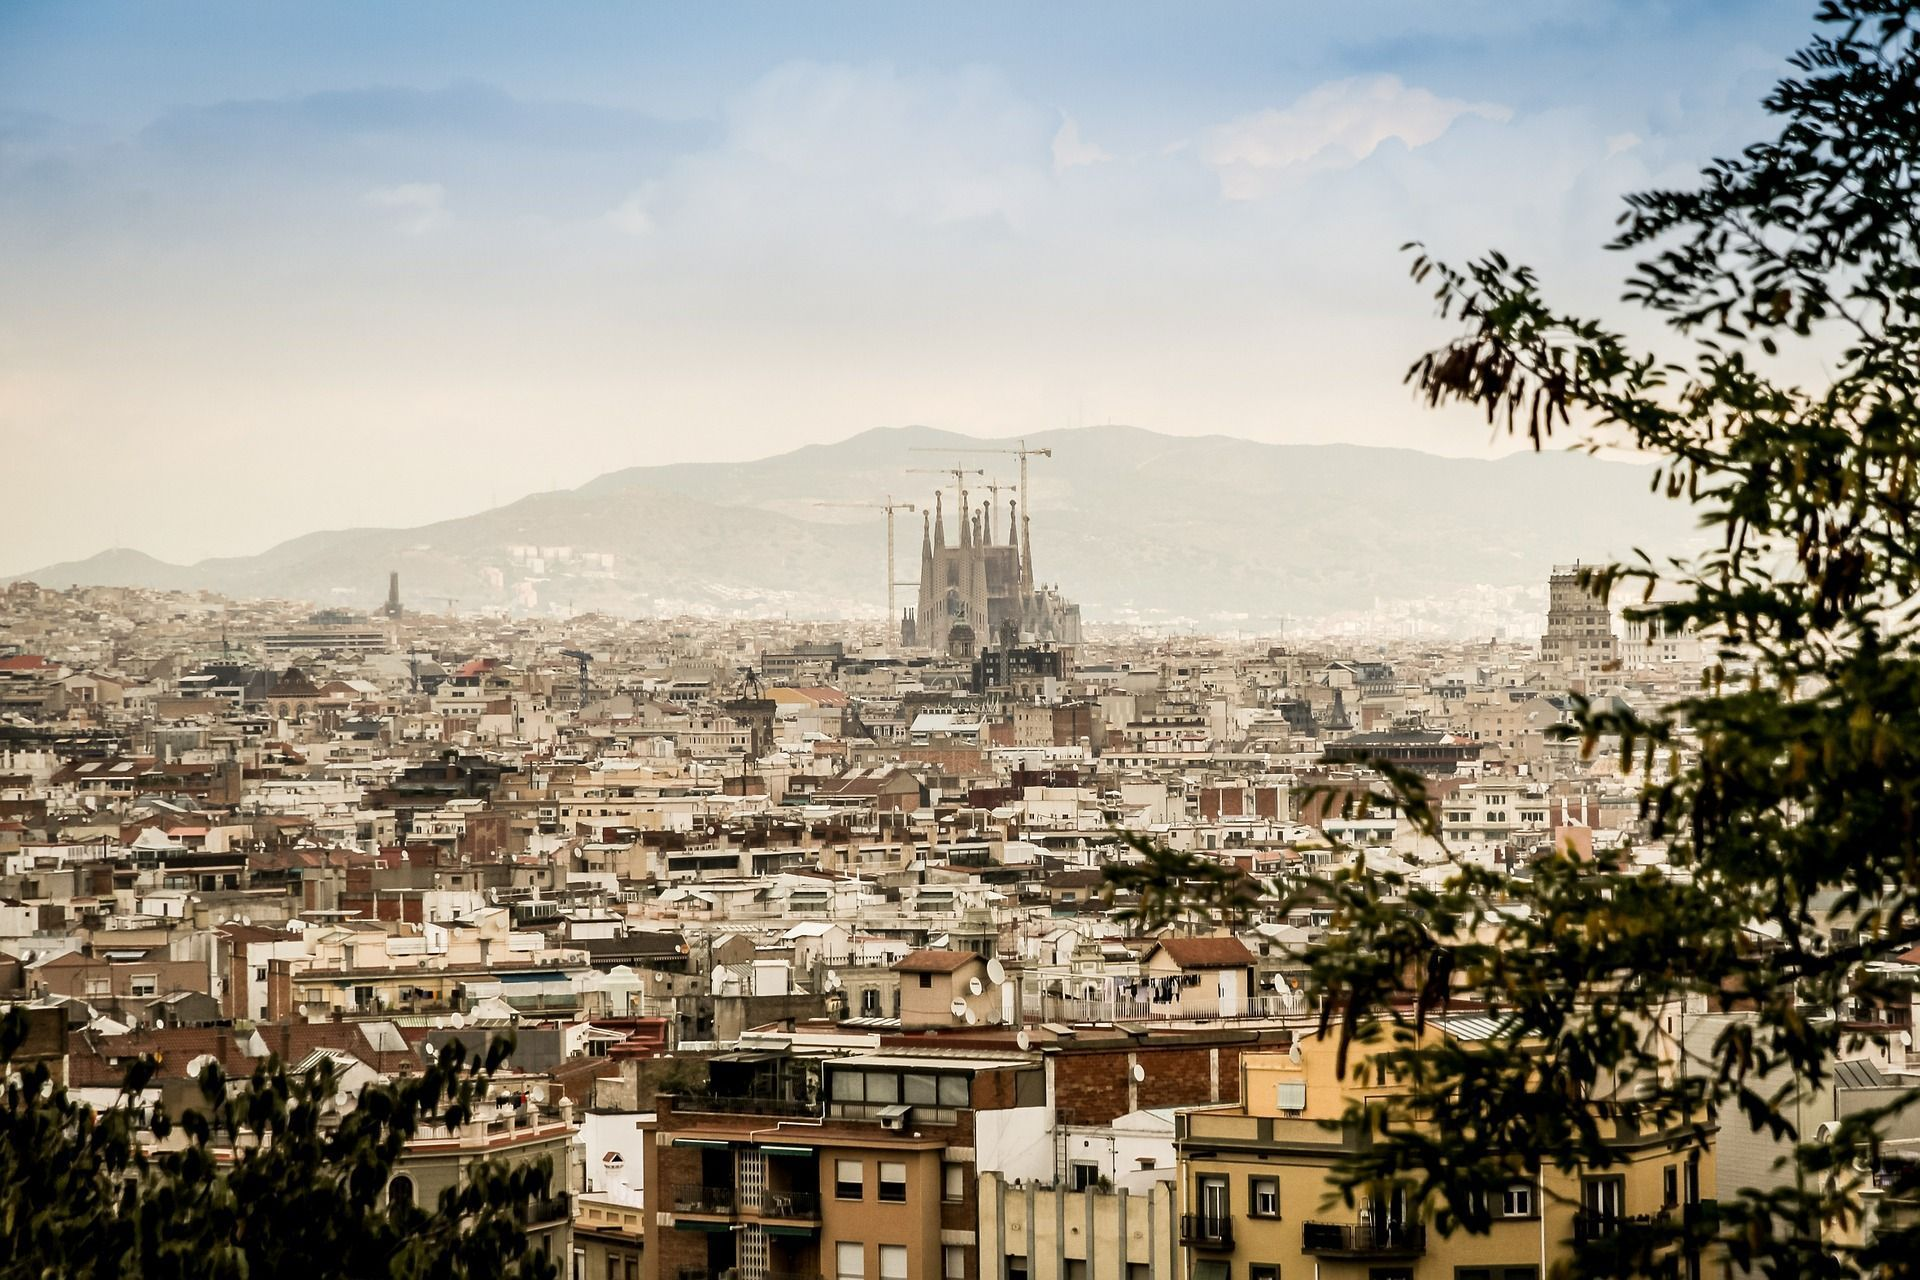 10 locations around Barcelona that should not be missed